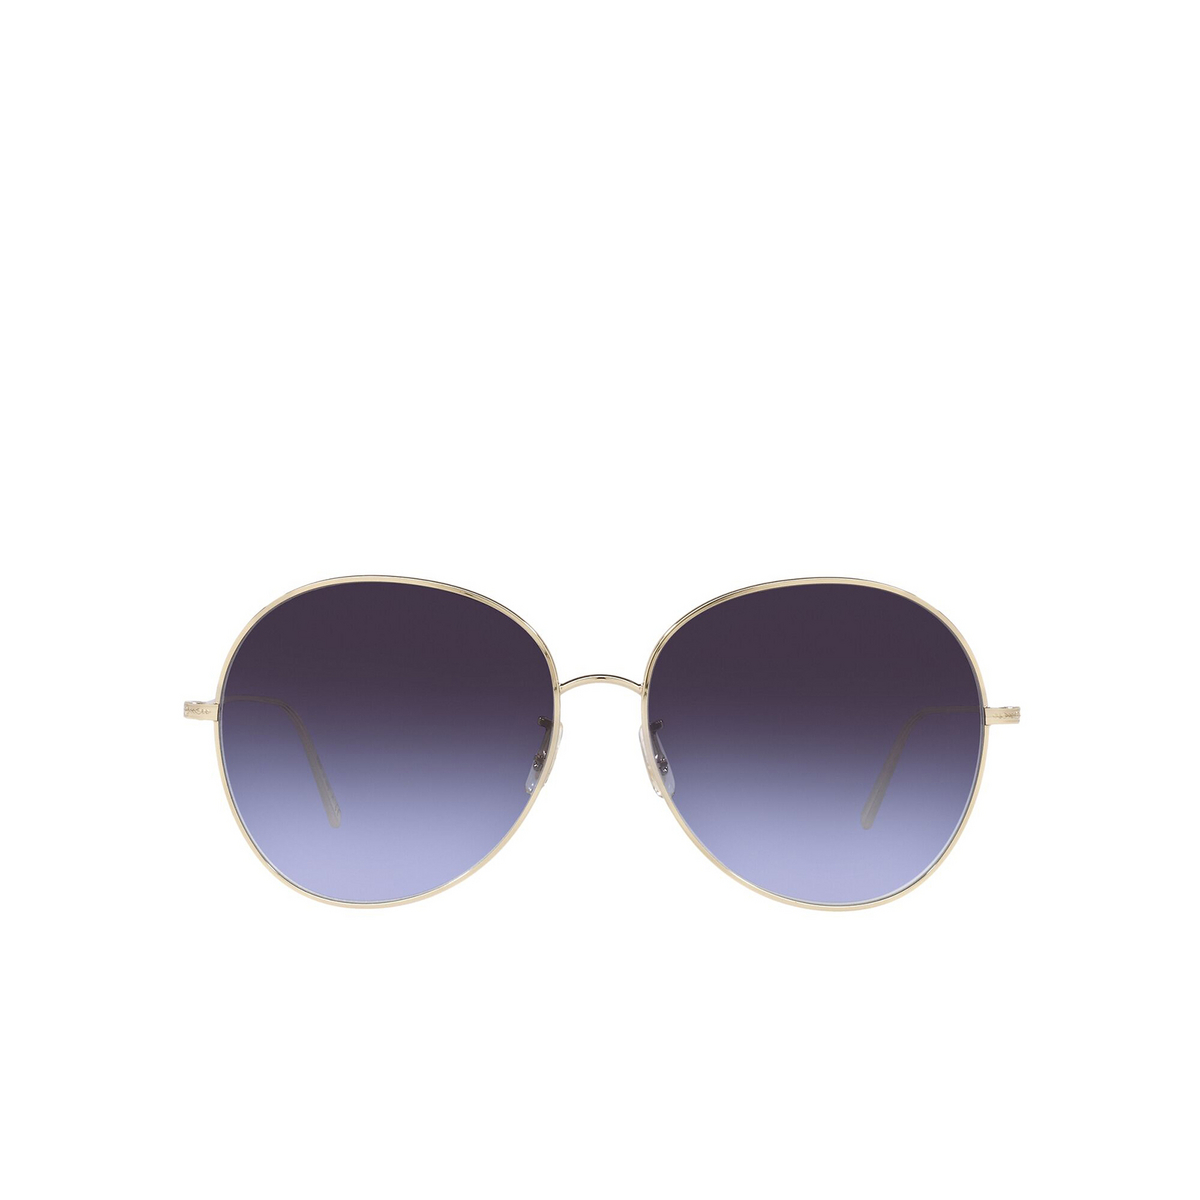 Oliver Peoples® Butterfly Sunglasses: Ysela OV1289S color Soft Gold 503579 - front view.